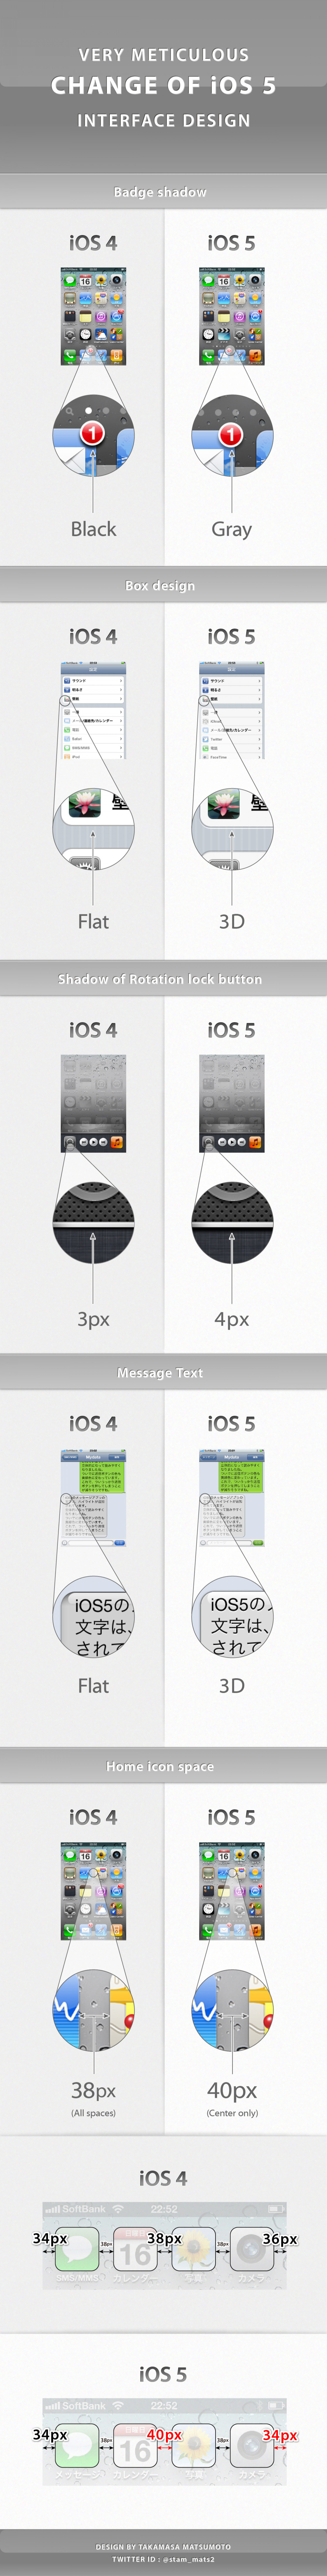 Very meticulous change of iOS 5 interface design Infographic